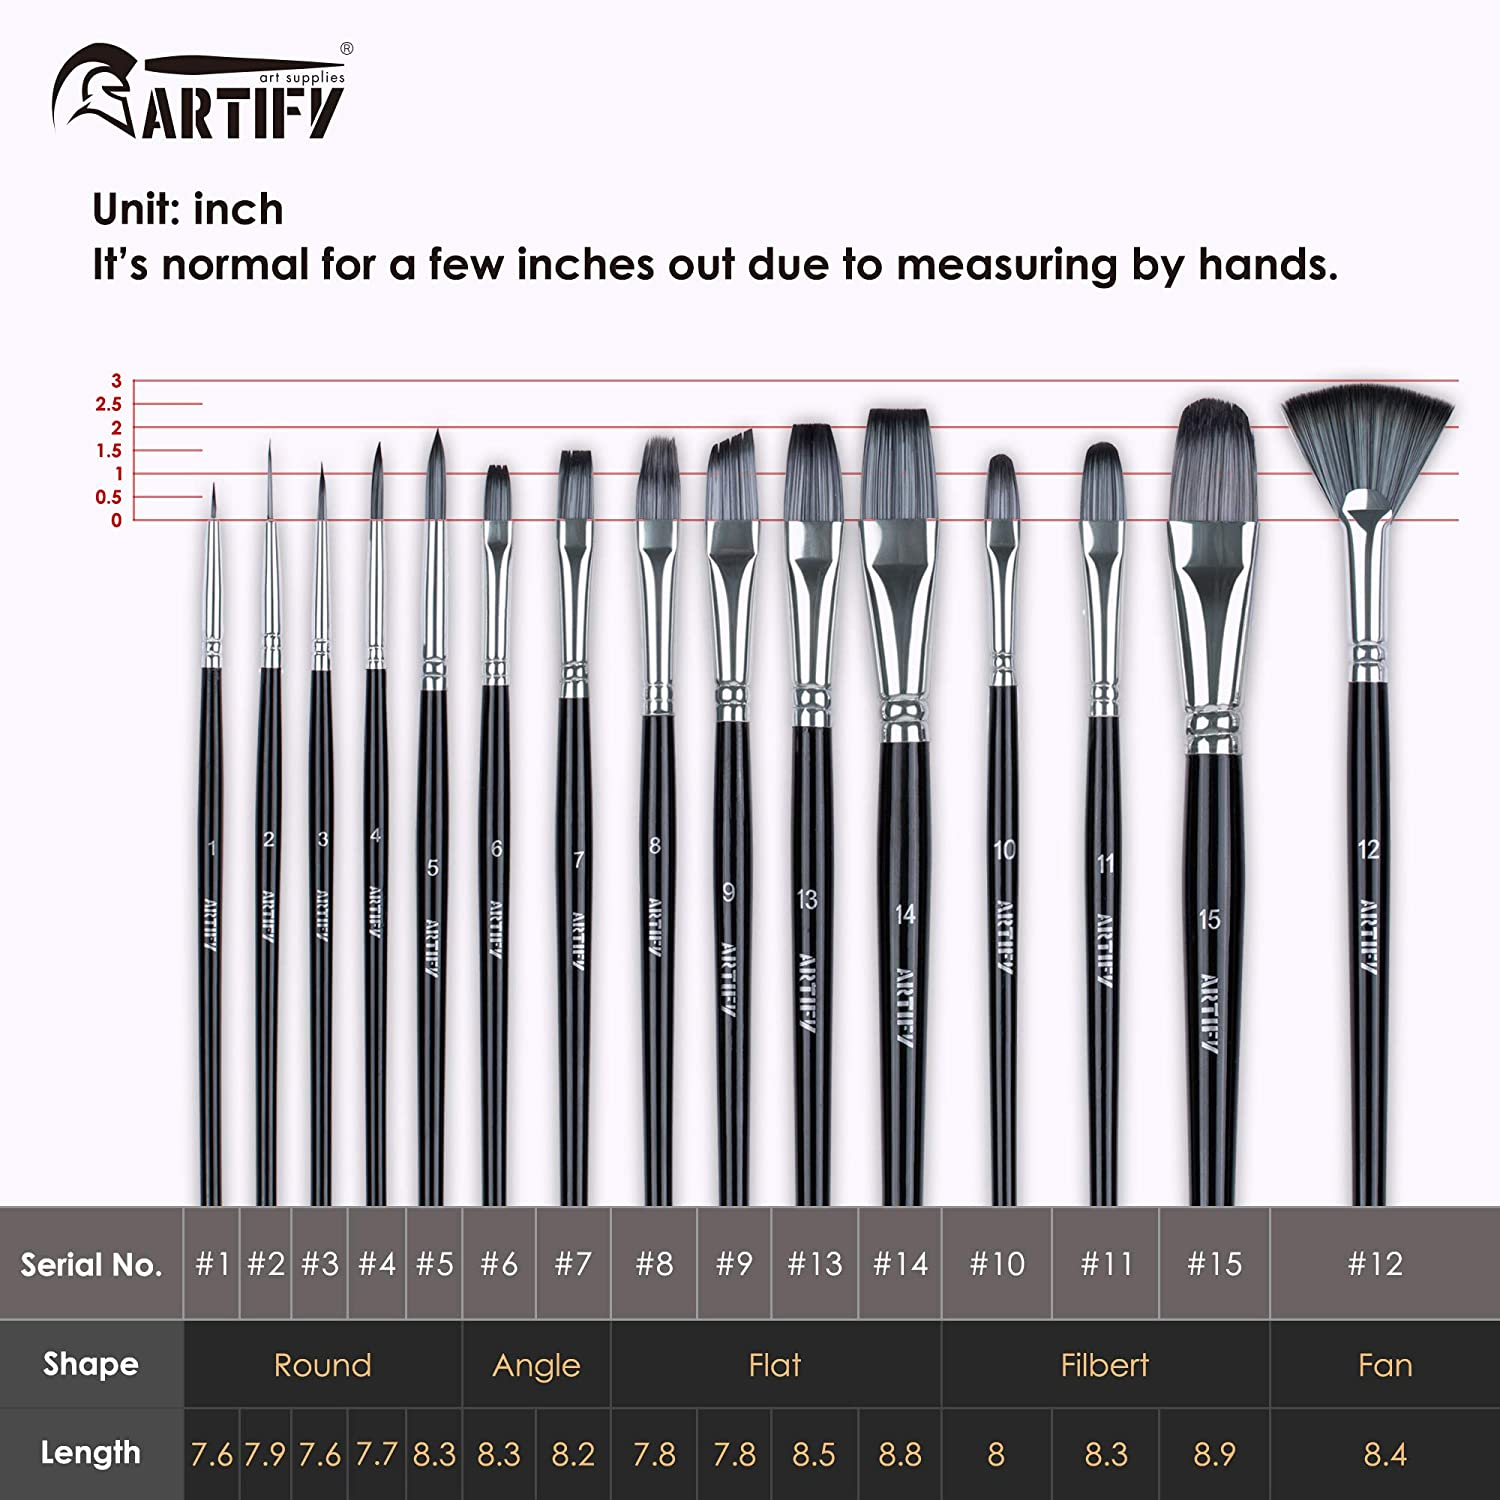 with Round Angle Artify 15 pcs Paint Brush Set- Nylon Painting Brushes for Acrylic Beginner and Professional Watercolor and Gouache Painting for Kids and Adults Flat Filbet Fan Shape,Black Oil